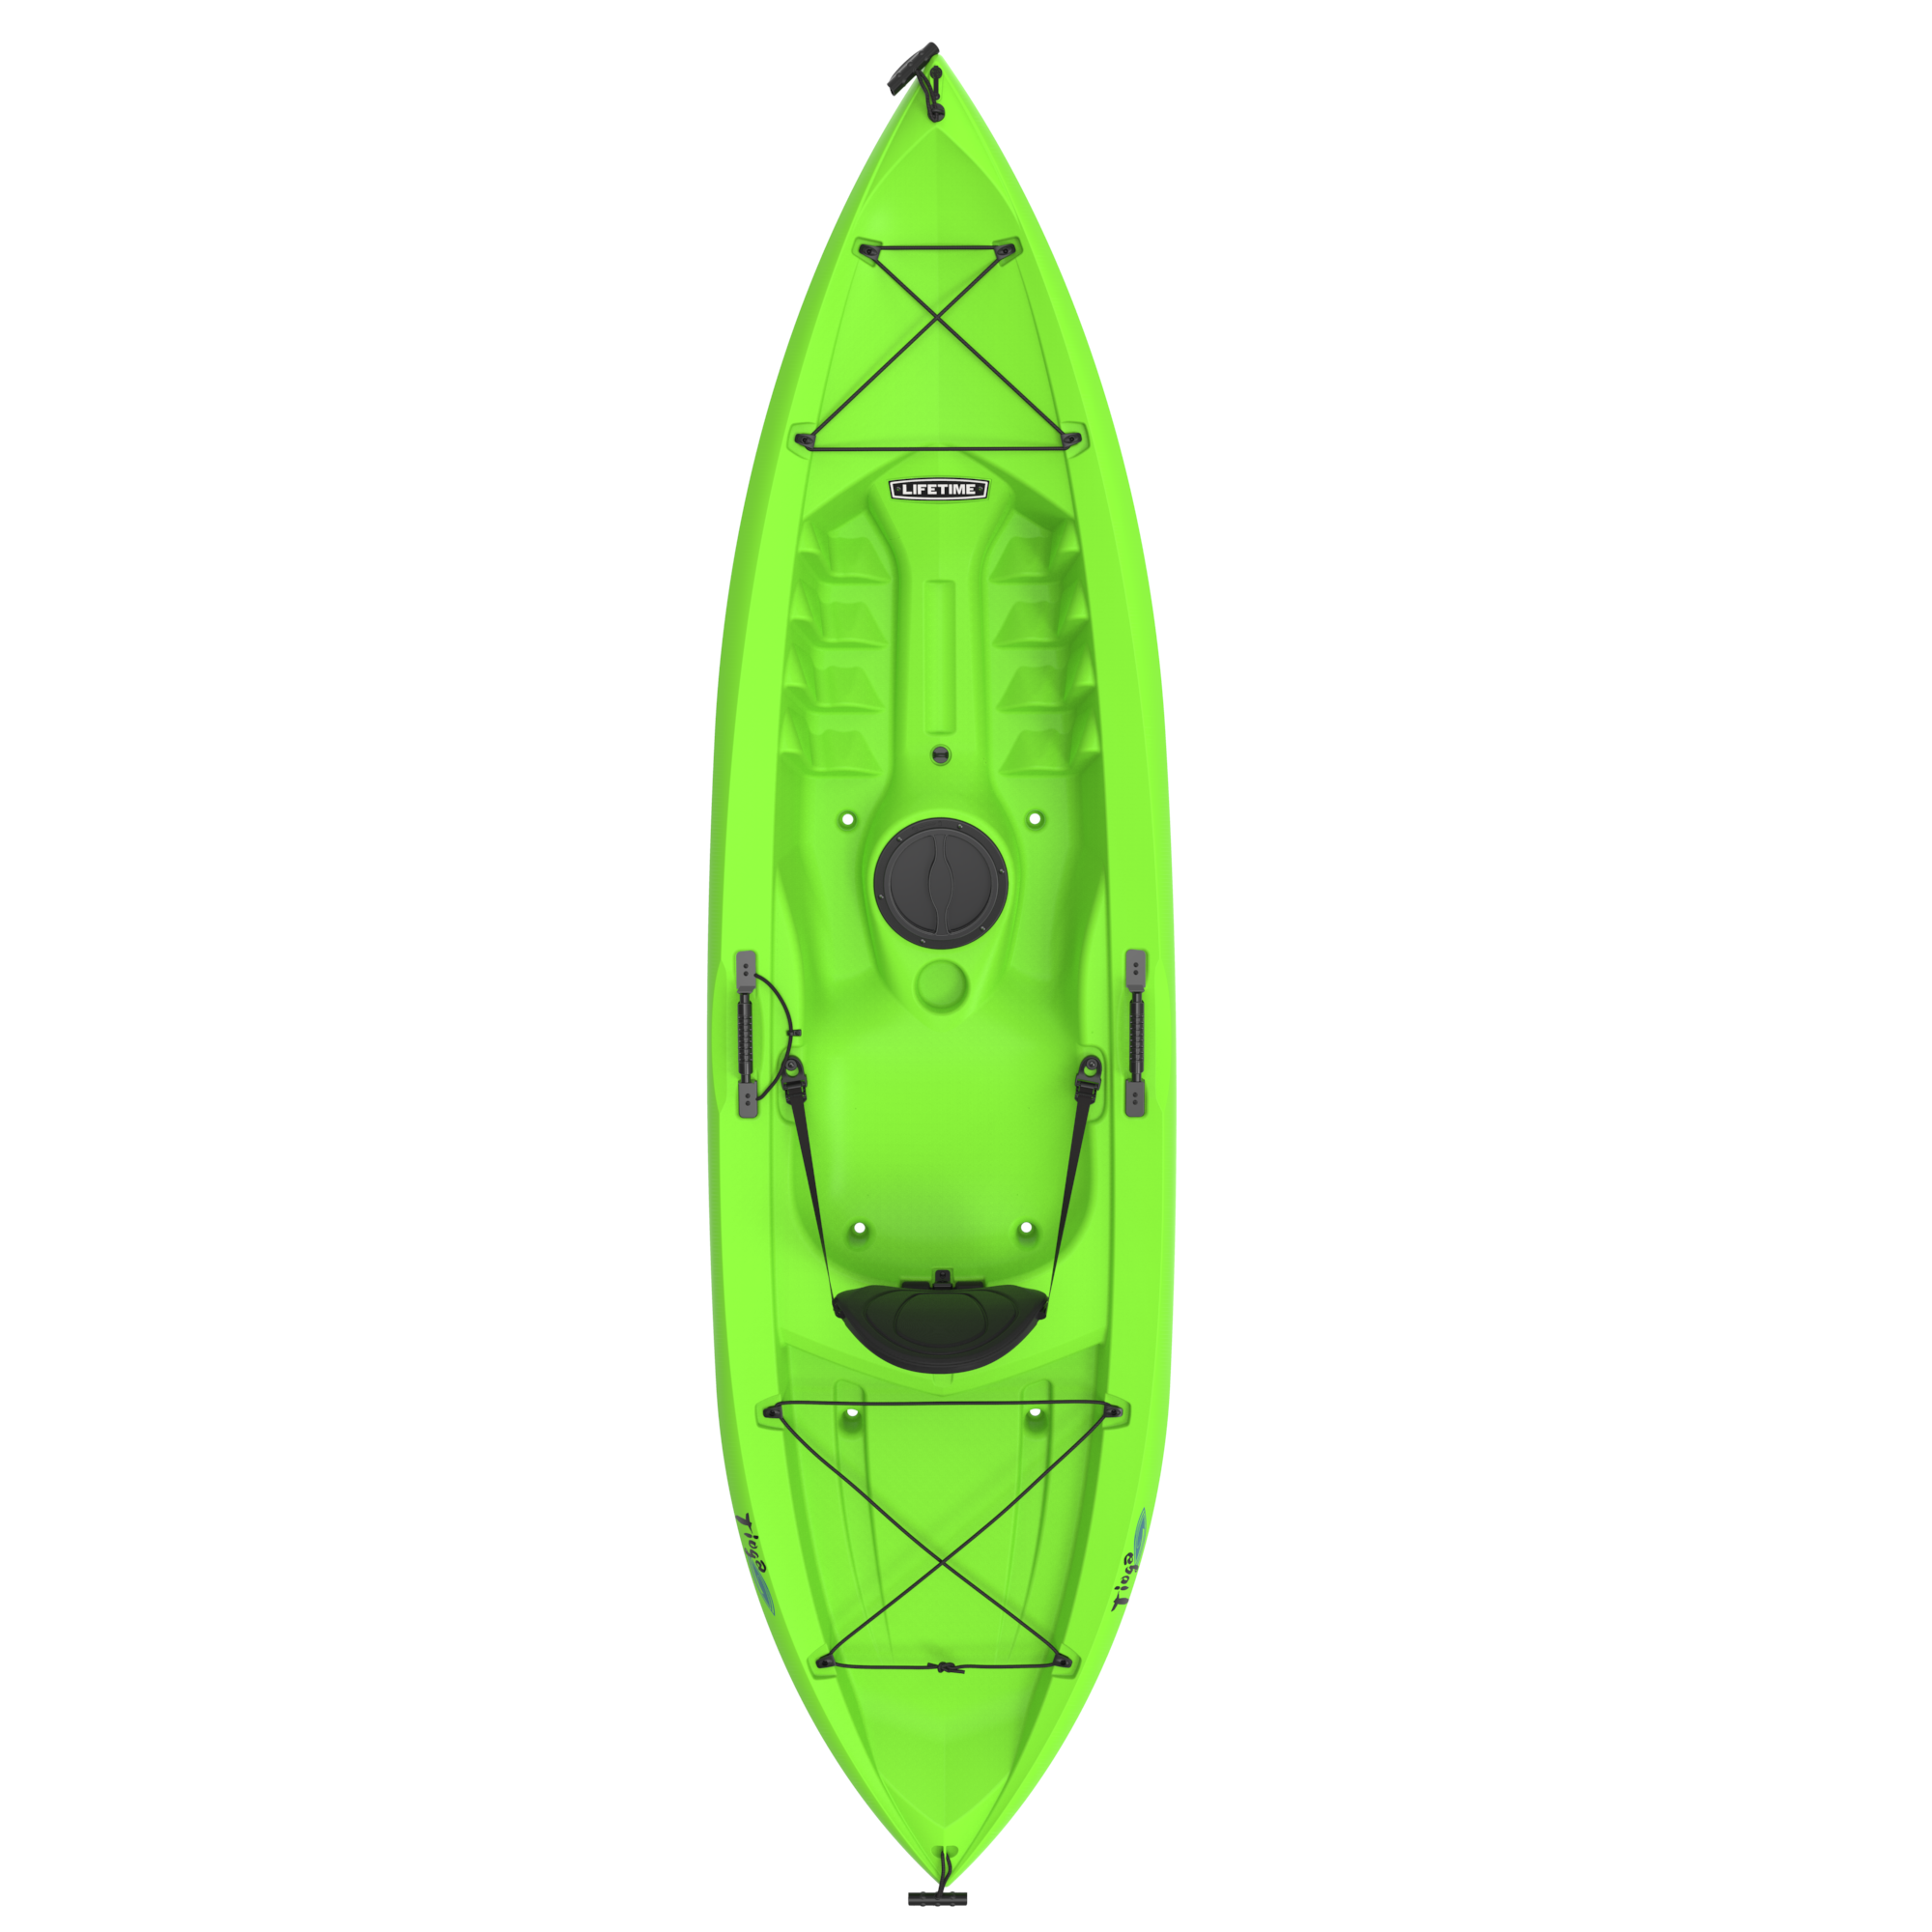 90534 Lifetime 10' Tamarack Lime Green Kayak